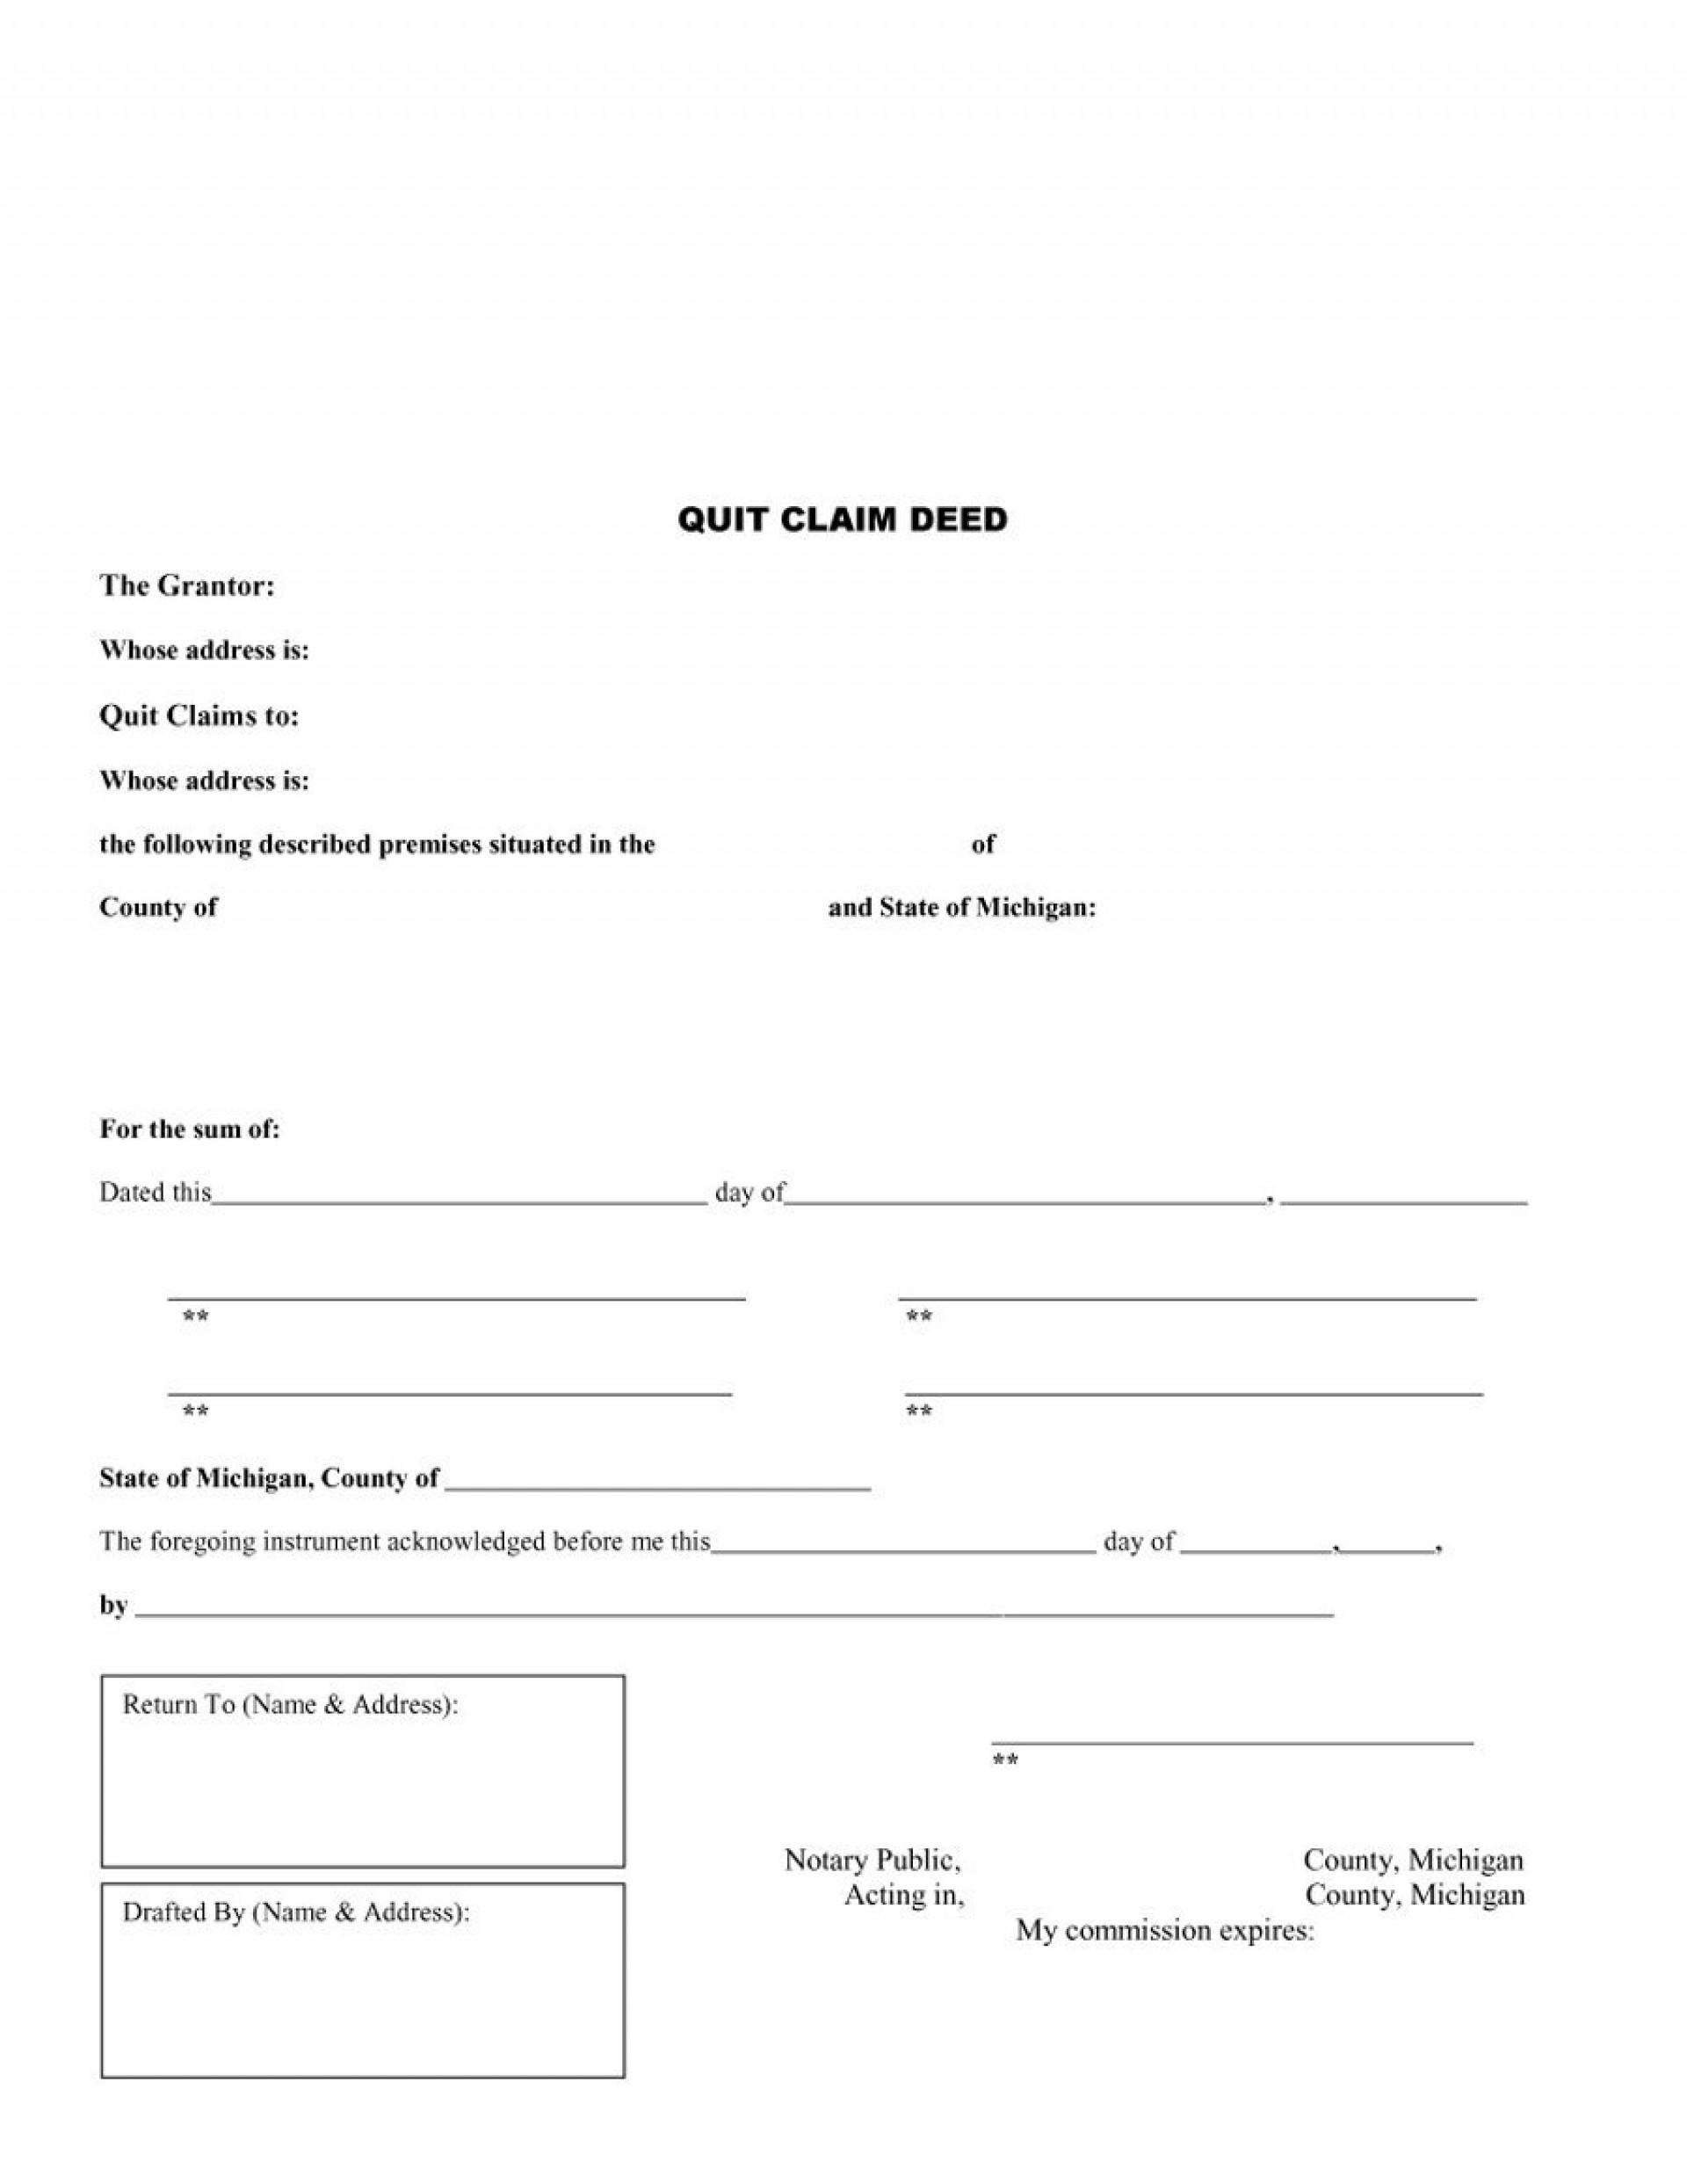 Free Printable Quit Claim Deed Form Michigan | Mbm Legal - Free Printable Quit Claim Deed Form